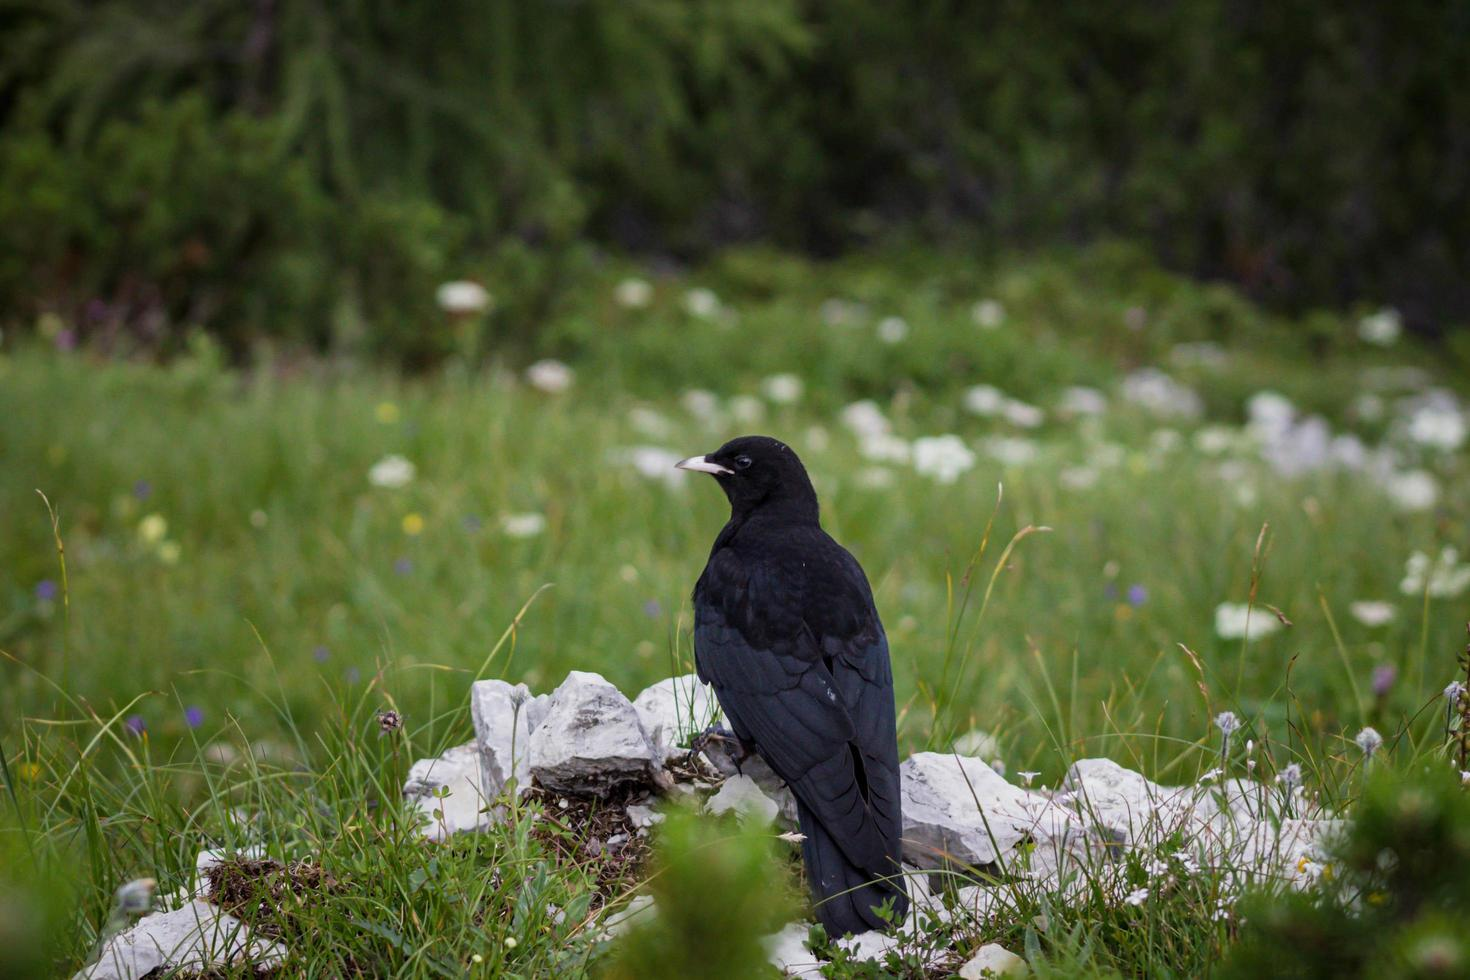 Crow on rocks in the grass photo